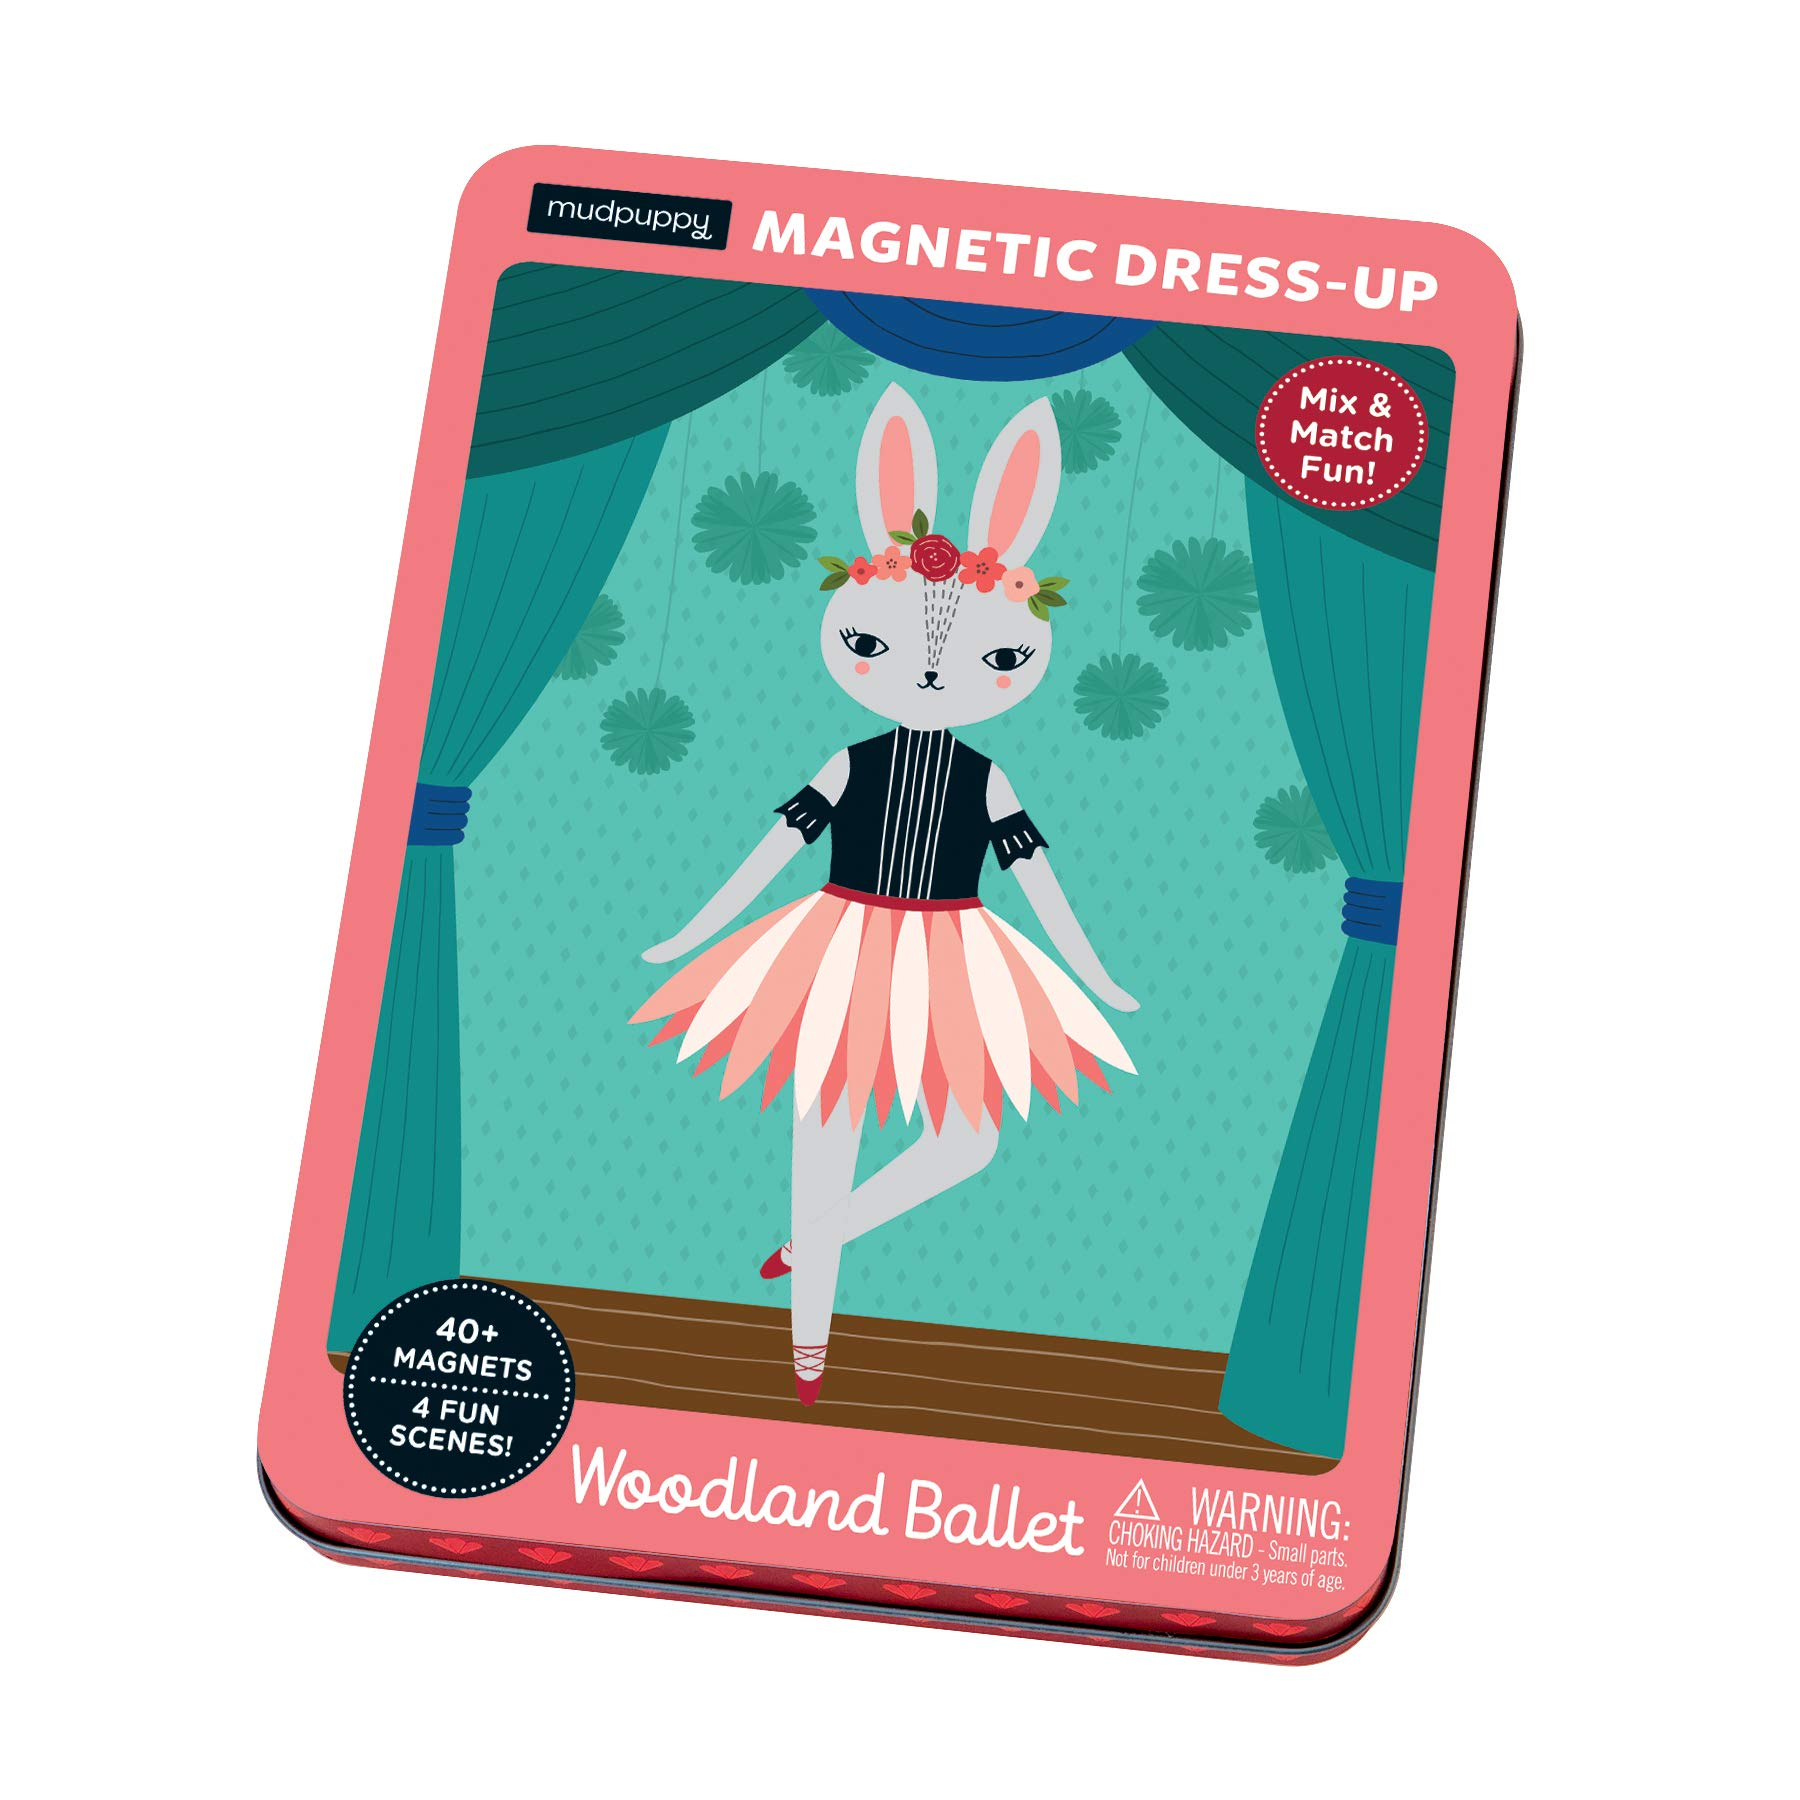 Mudpuppy Woodland Animal Ballerina Magnetic Dress-Up, Multicolor, Ages 4+, 40 Pieces, Great for Travel by Mudpuppy